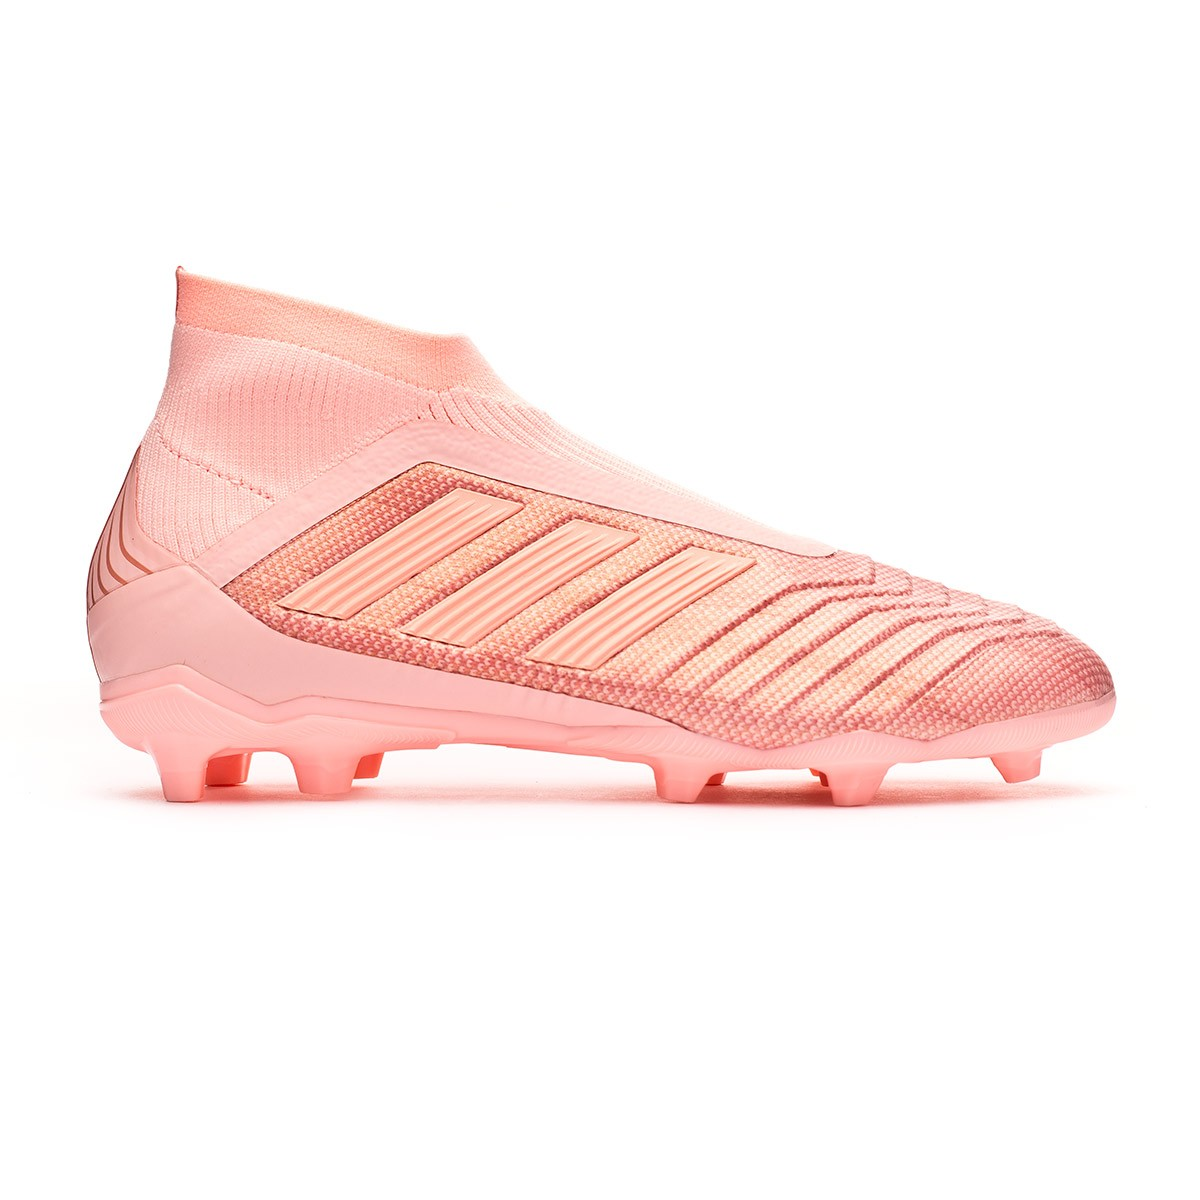 7f14cd89c27d Football Boots adidas Kids Predator 18+ FG Clear orange-Trace pink - Tienda  de fútbol Fútbol Emotion